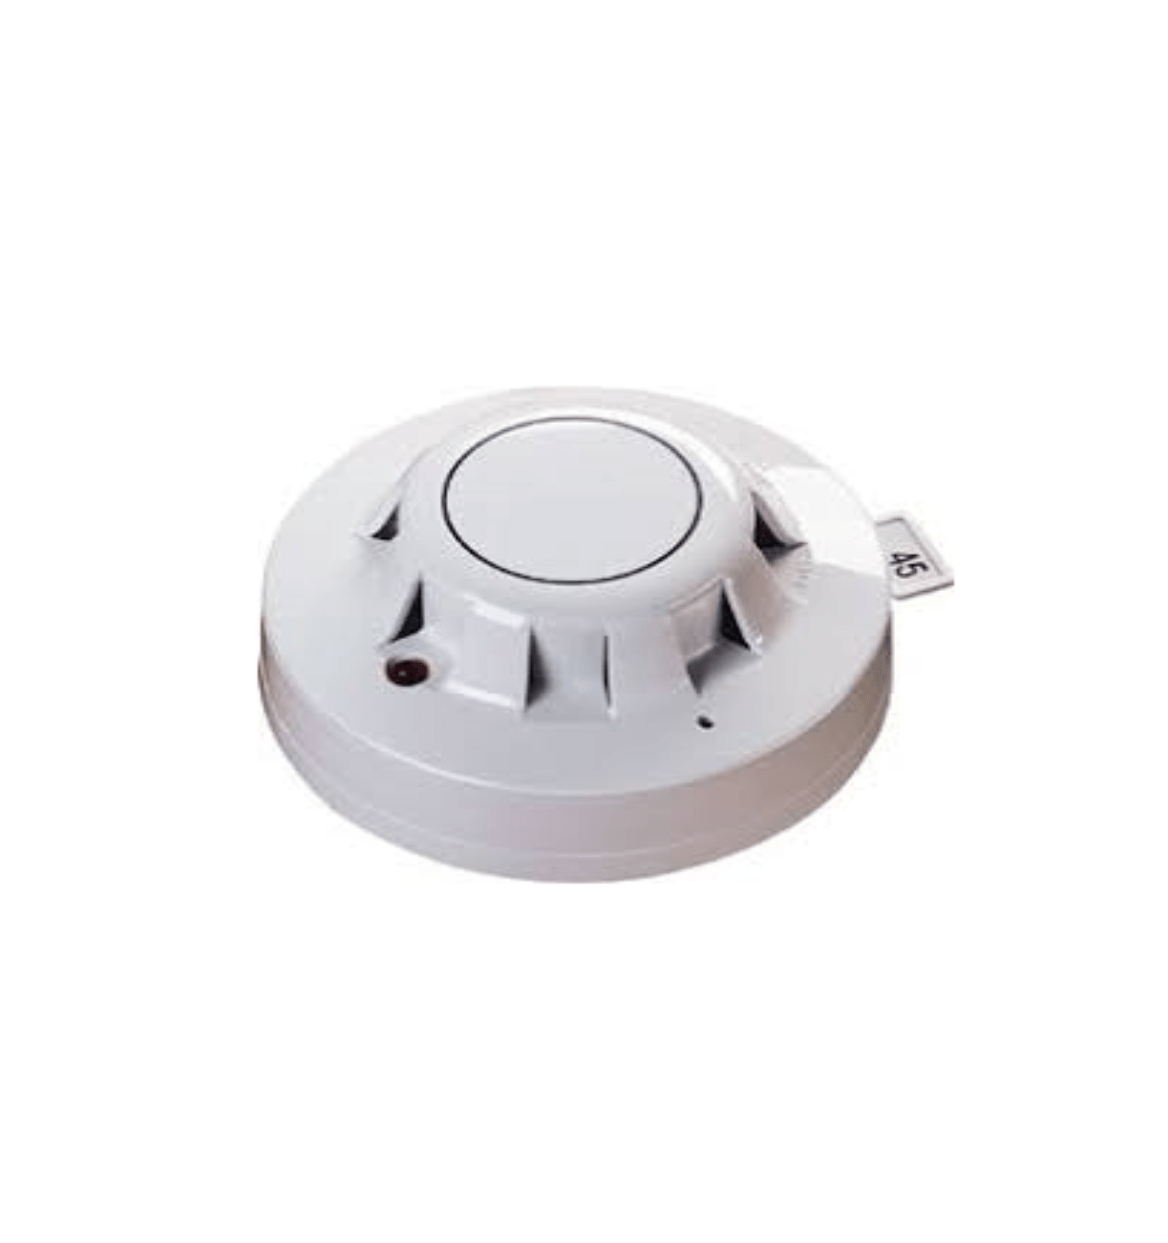 hight resolution of addressable ionization smoke detector